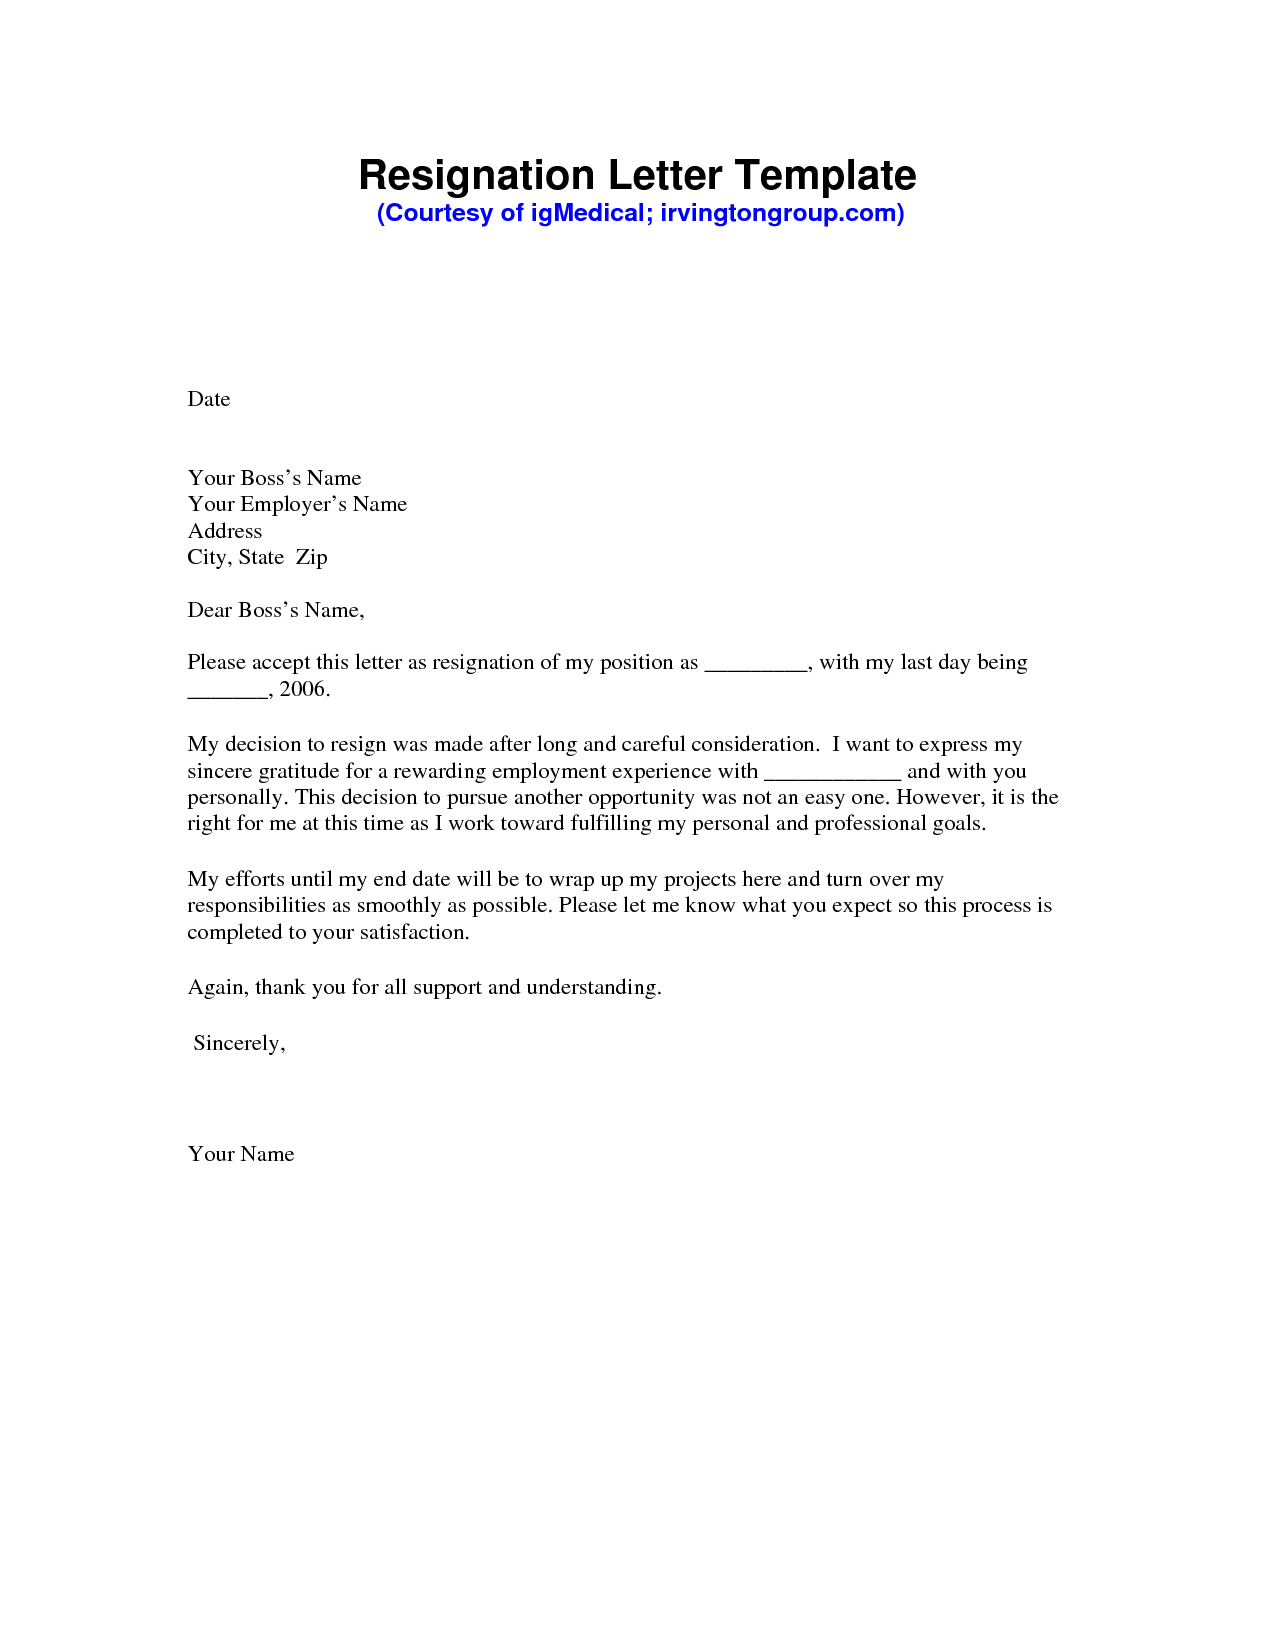 Letters Of Resignation Samples Resignation Letter Sample Pdf  Resignation Letter  Pinterest .